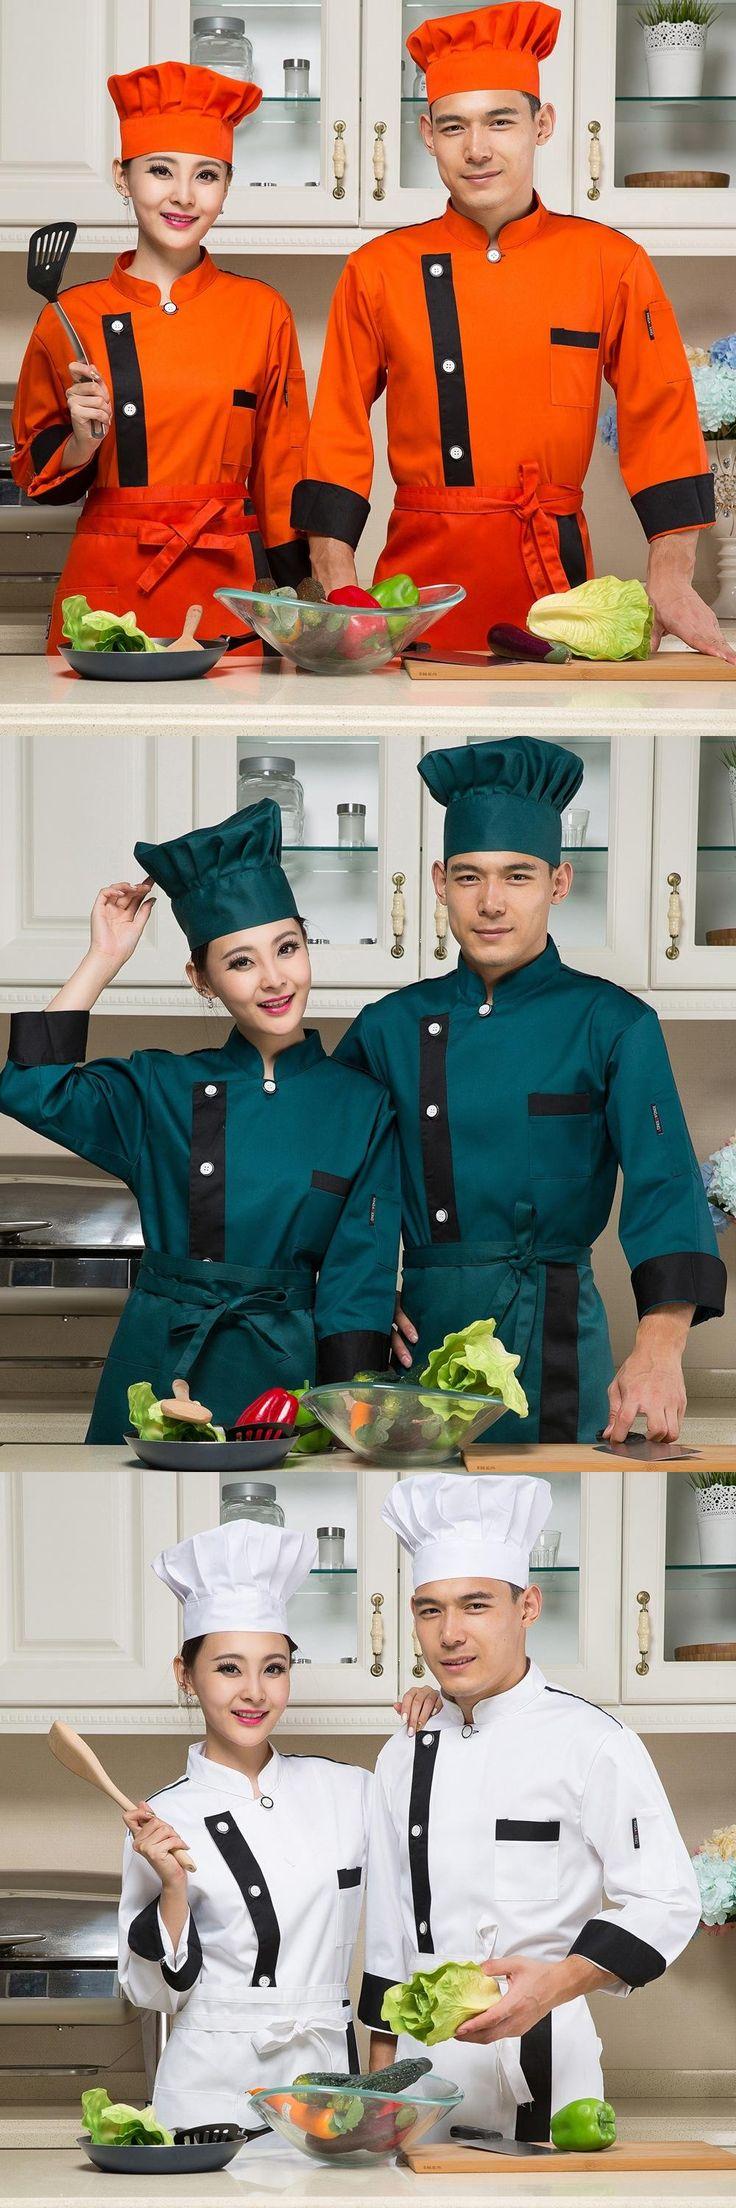 Chef clothing fall and winter clothes hotel Western chef clothing chef clothing long-sleeved kitchen hotel chefs uniforms